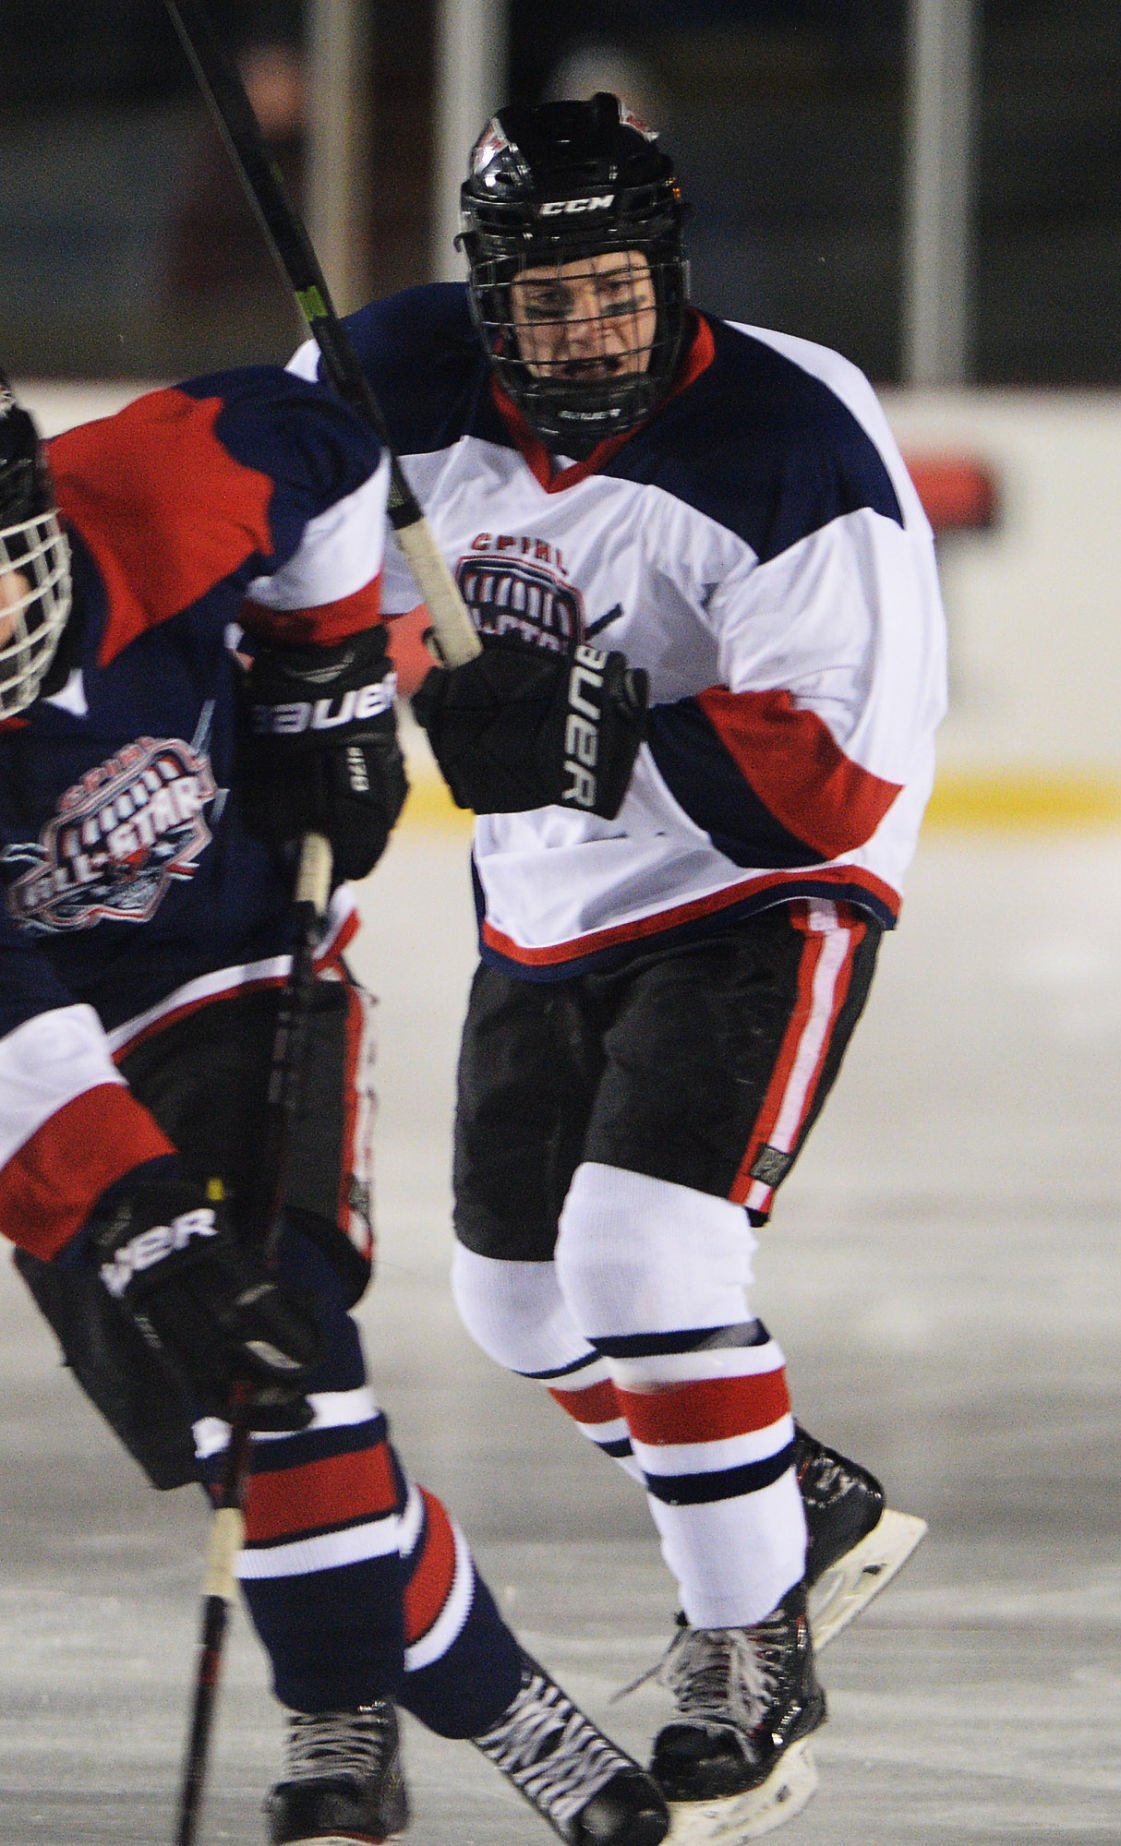 CPIHL All-Star Game (copy)